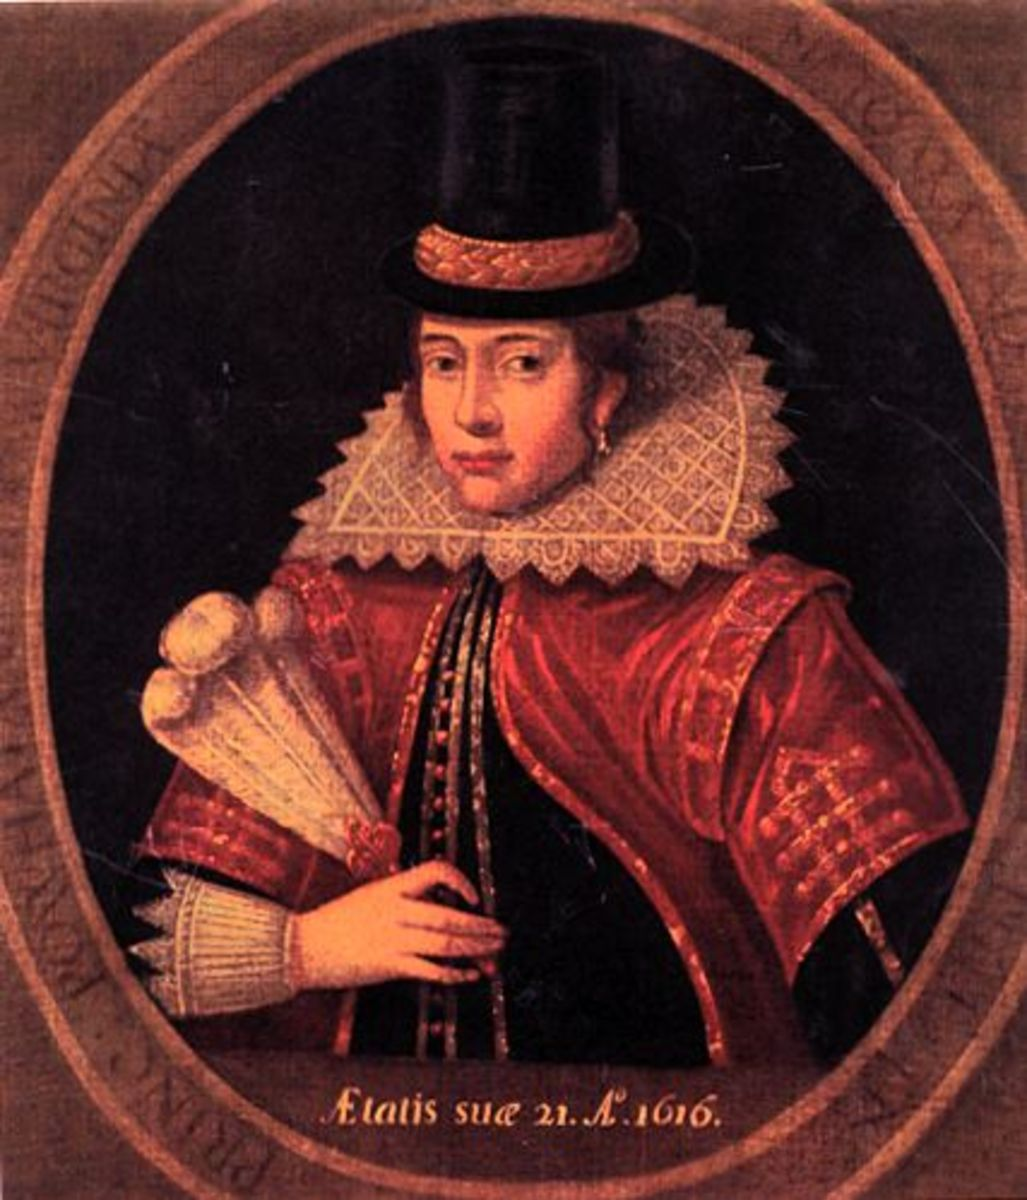 Historic portrait of the real Pocahontas in London, age 21 (pocahontas.morenus.org)